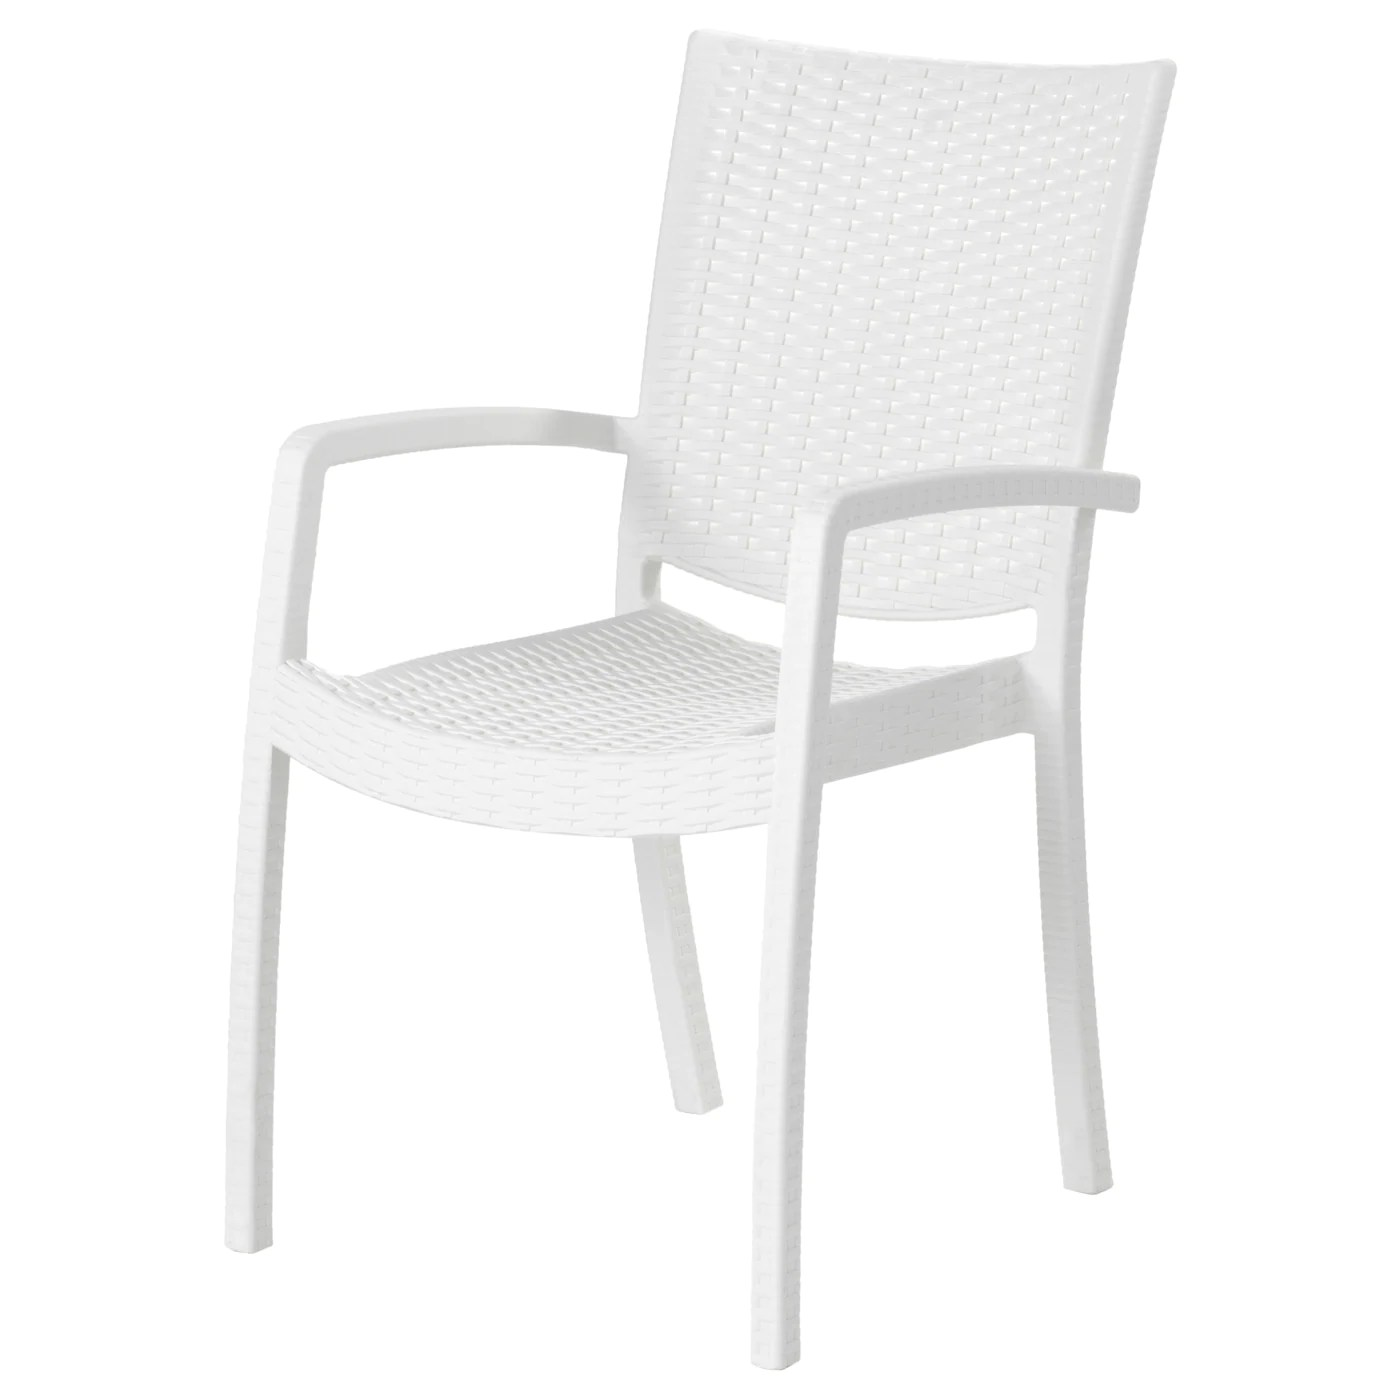 white outside chairs 6 chair dining set innamo with armrests outdoor ikea